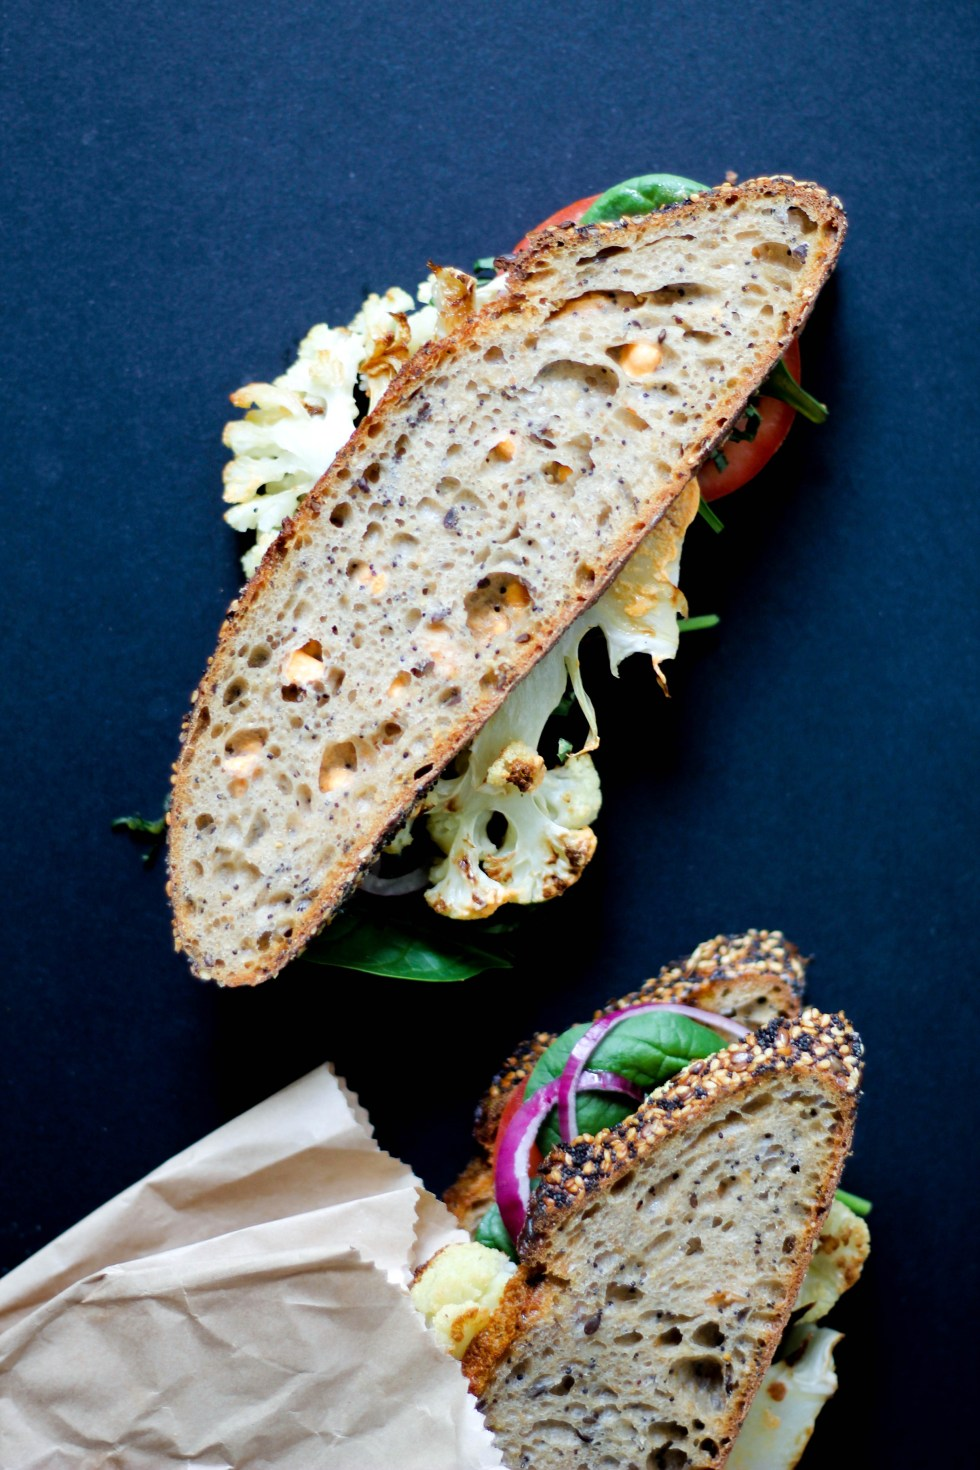 Roasted cauliflower sandwich with whipped pimento feta and apple cider vinegar reduction.